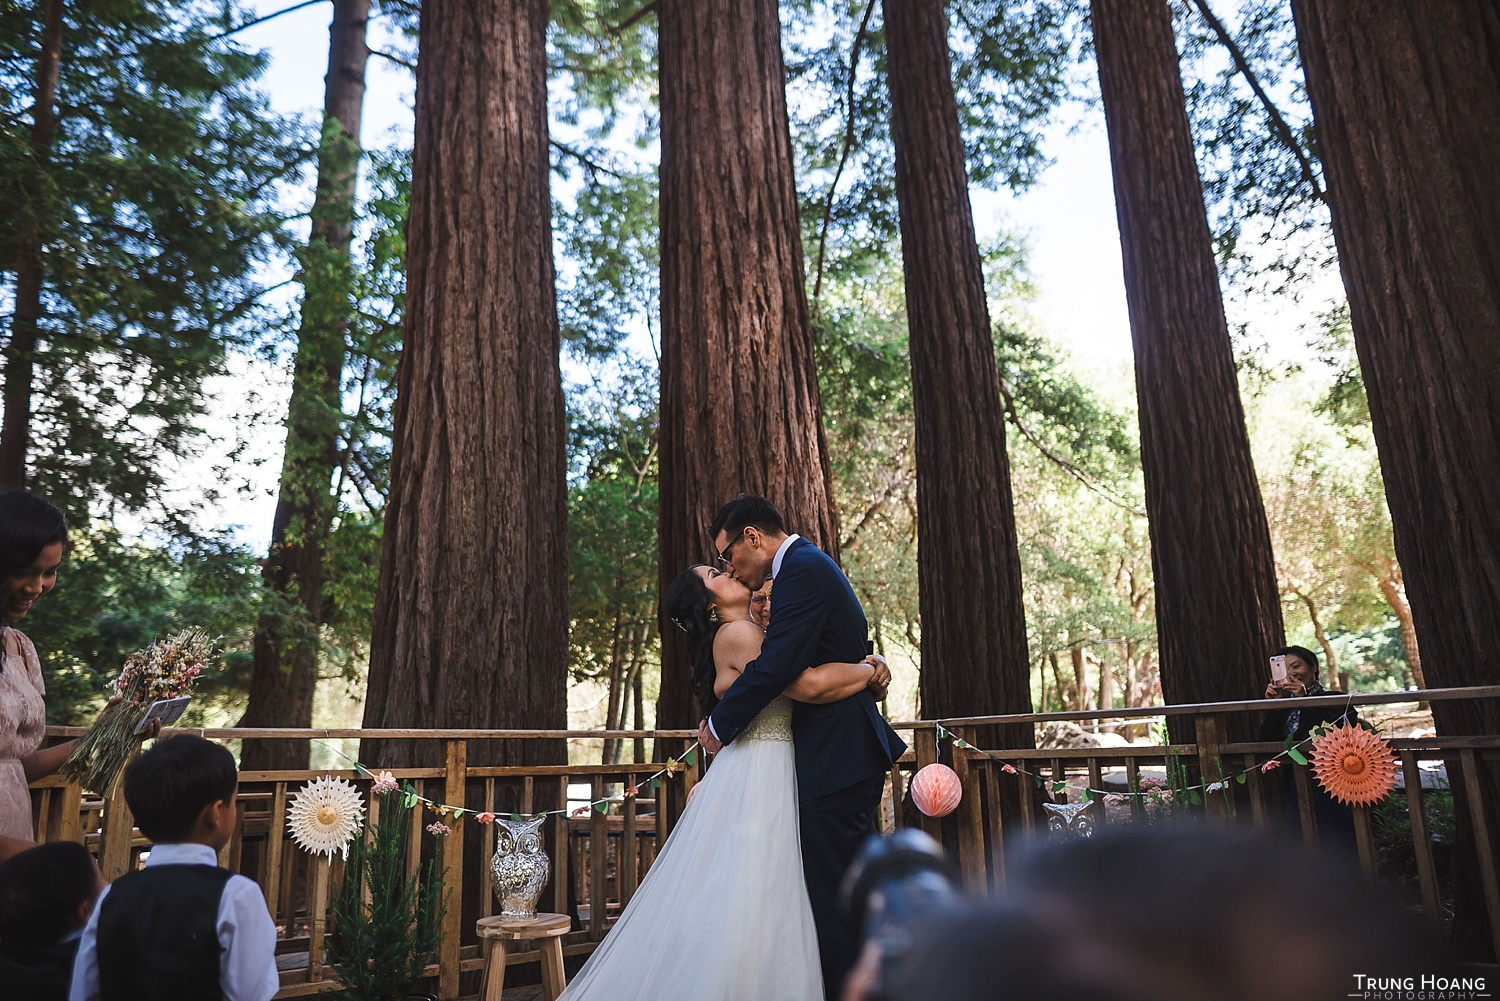 Photo by Trung Hoang Photography (www.trunghoangphotography.com)